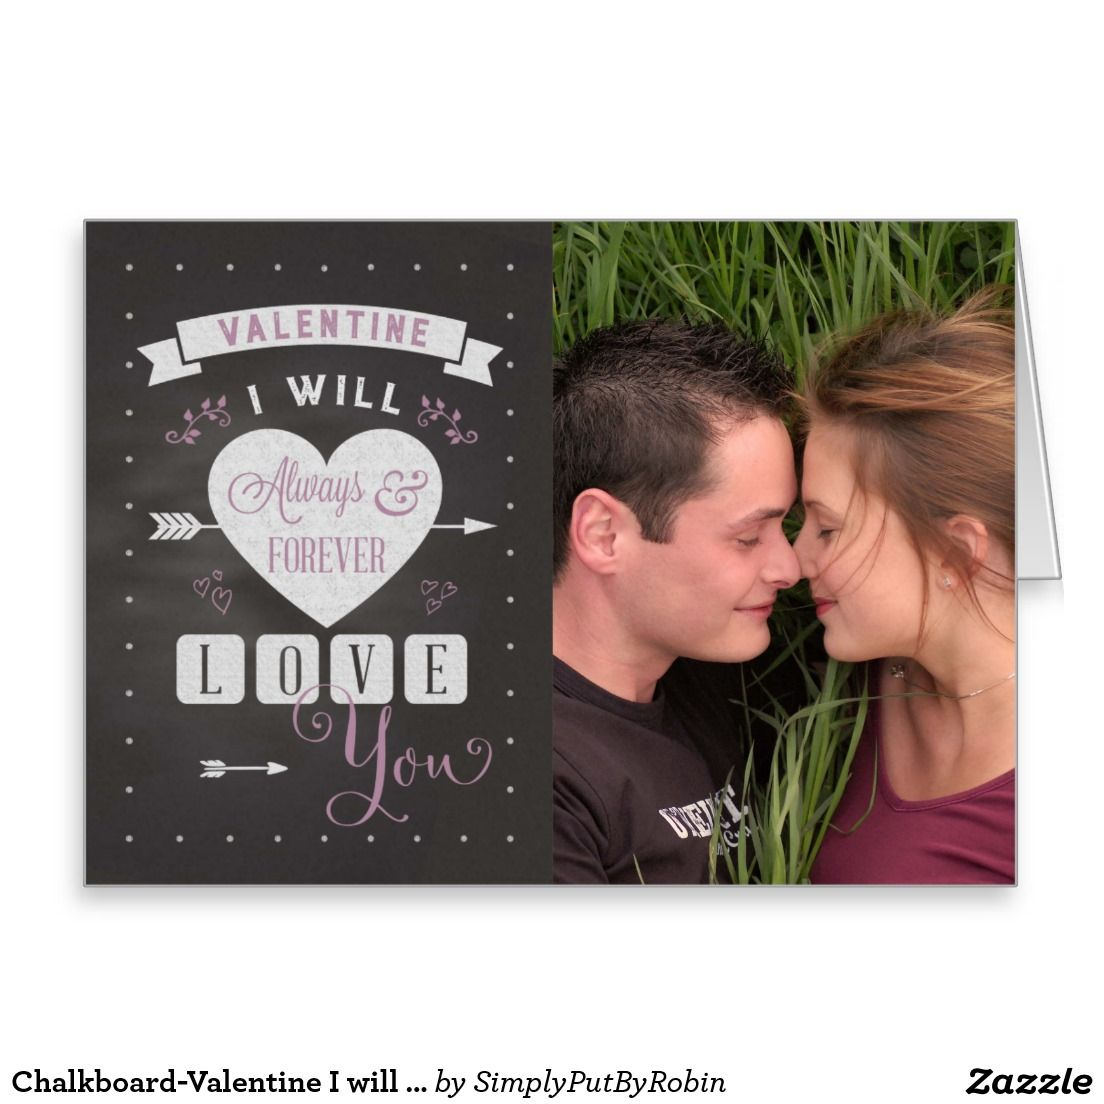 Chalkboard-Valentine I will always love you! photo Greeting Card